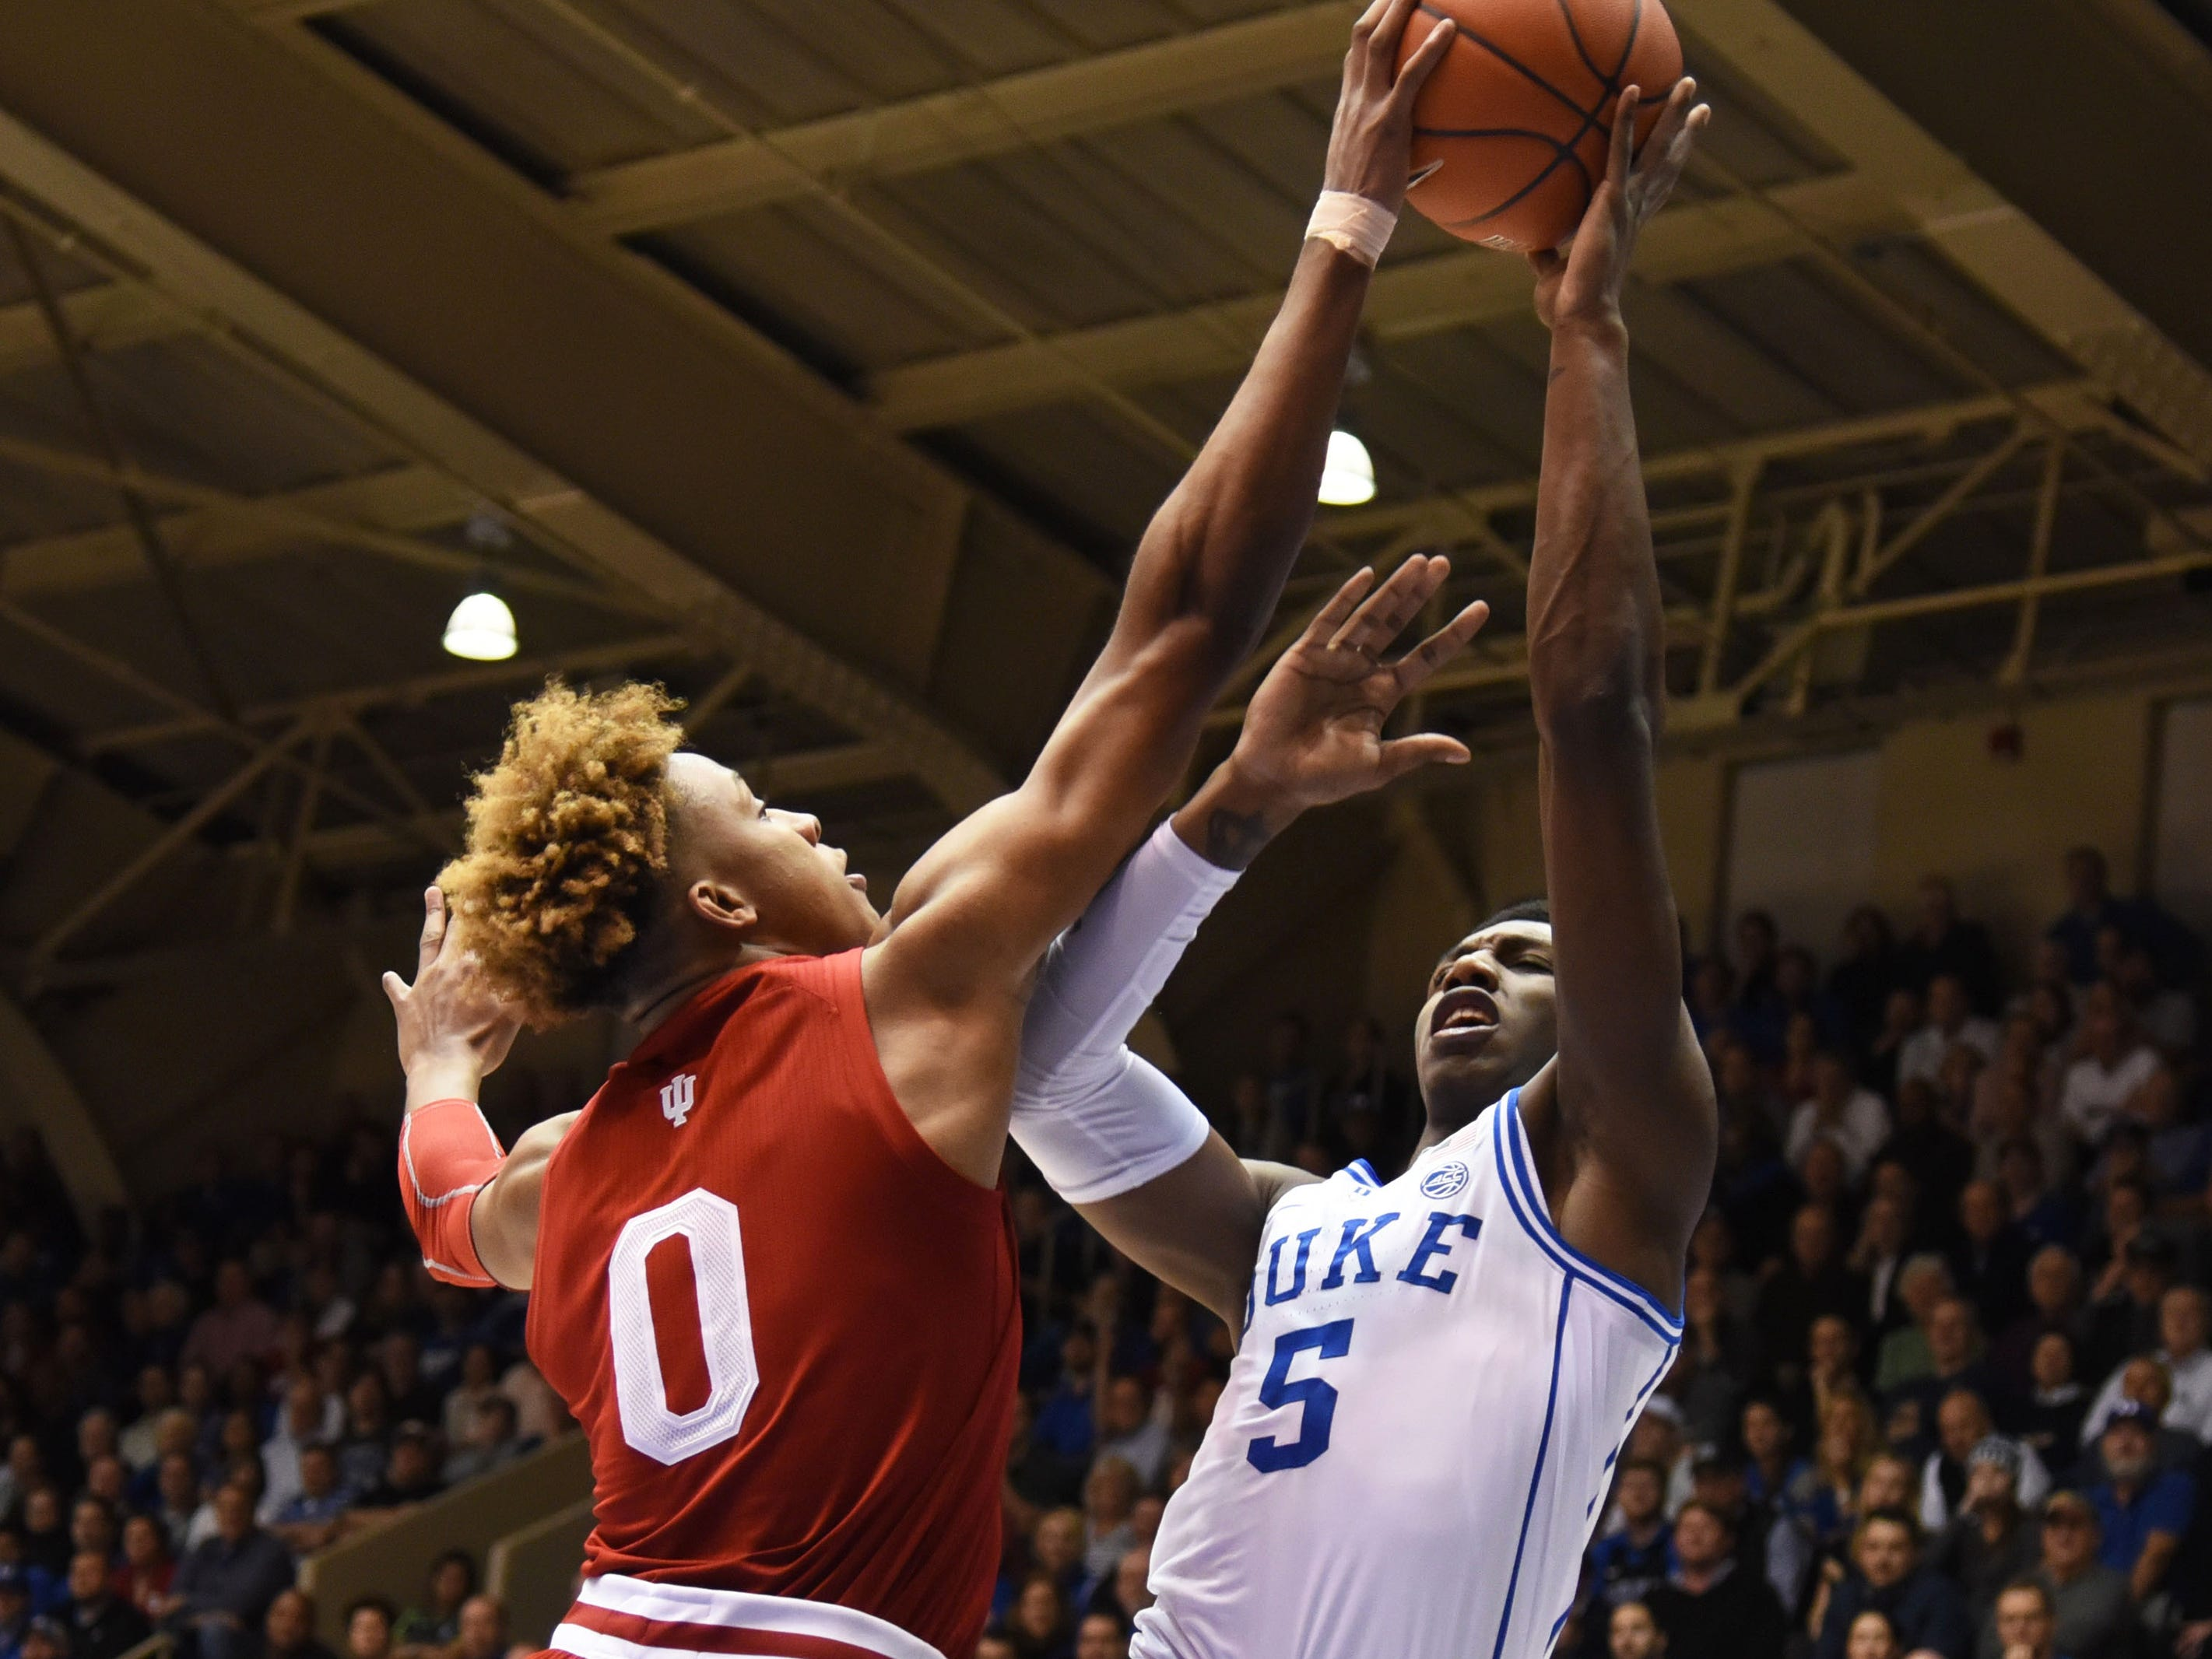 Nov 27, 2018; Durham, NC, USA; Indiana Hoosiers guard Romeo Langford (0) blocks the shot of Duke Blue Devils forward R.J. Barrett (5) during the first half at Cameron Indoor Stadium.